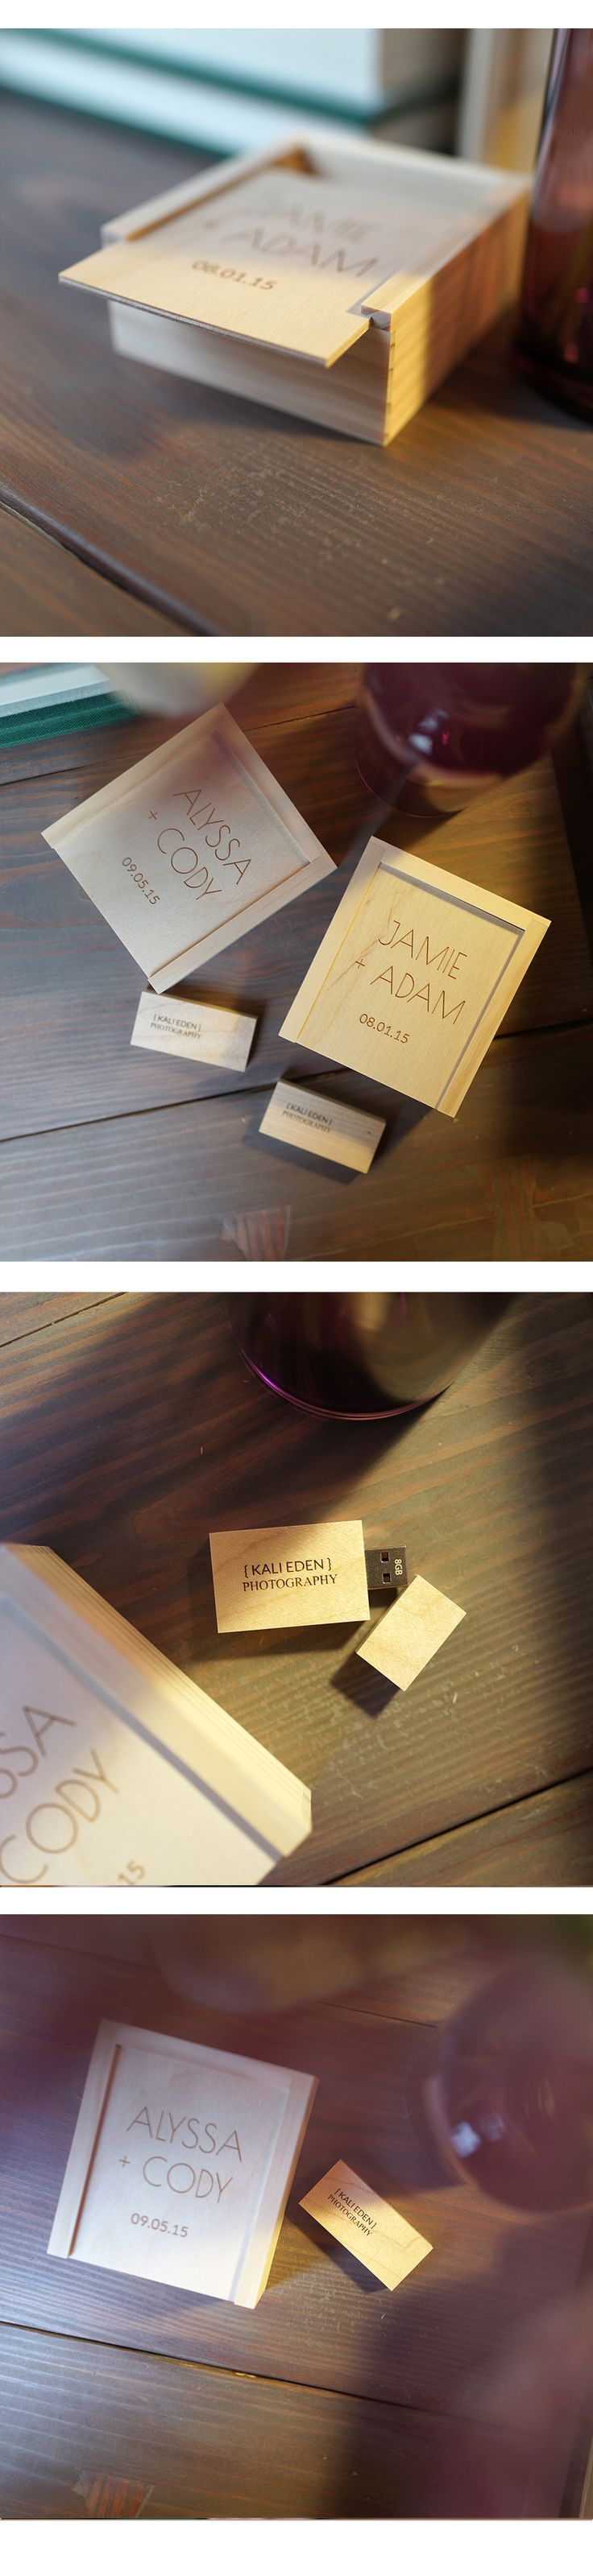 We freaking LOVE these adorable wooden USB + Boxes! <3